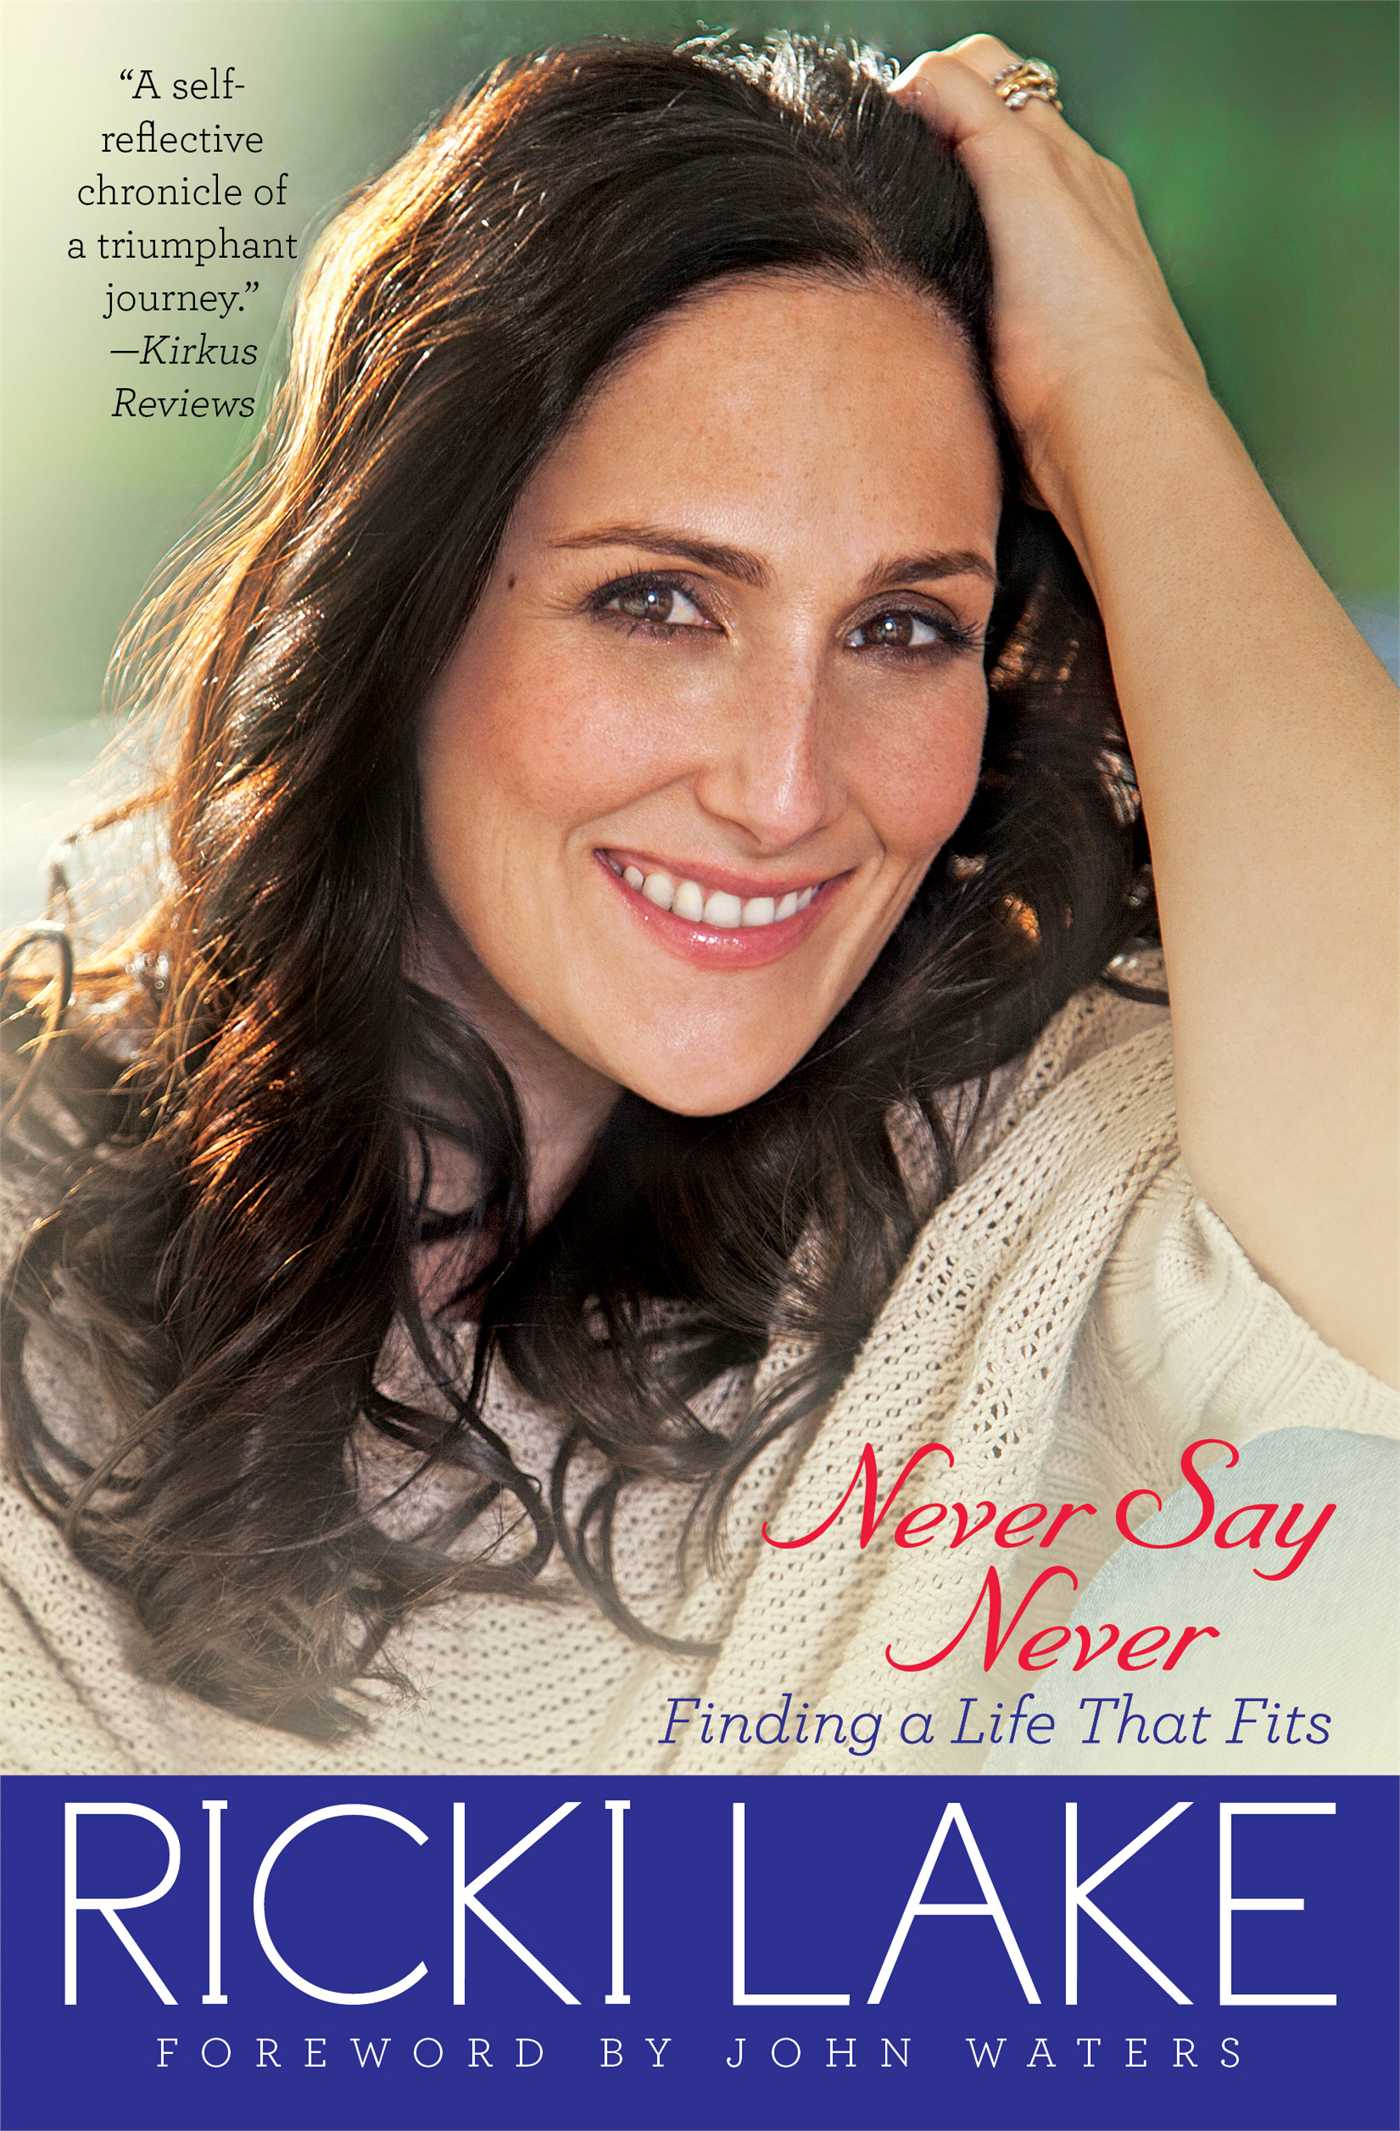 Never say never 9781451627183 hr